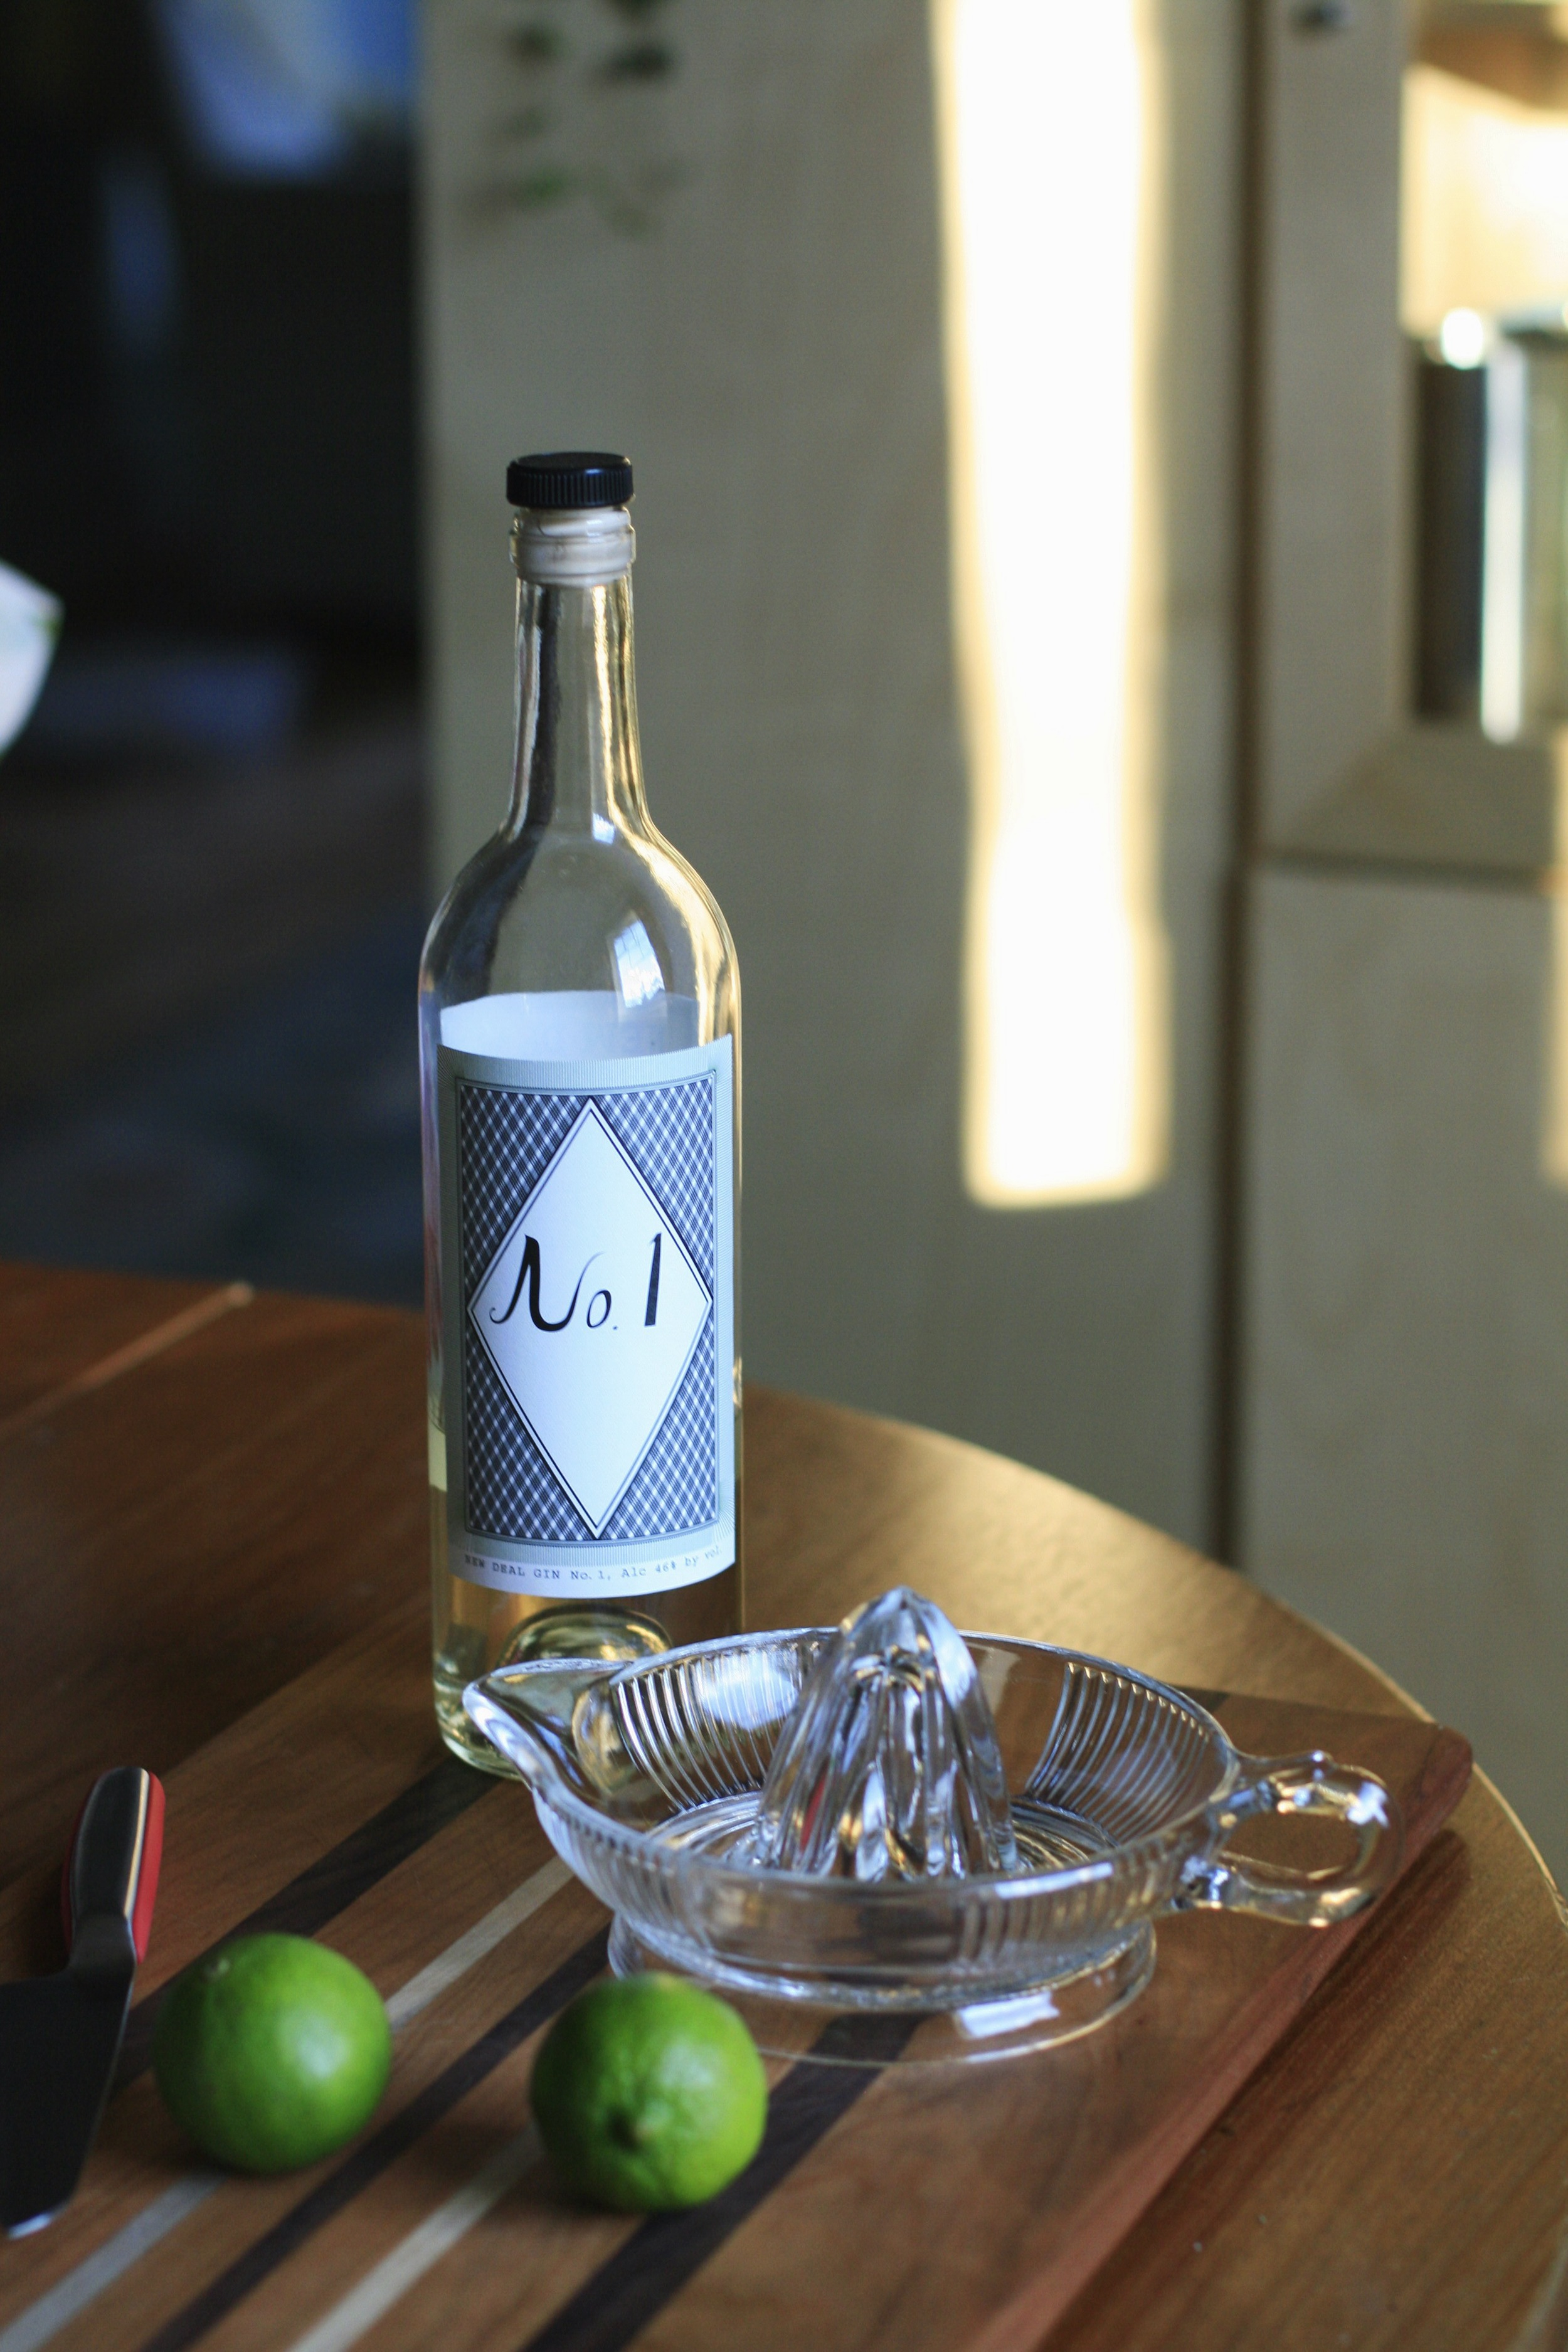 New Deal No. 1 - a winter gin